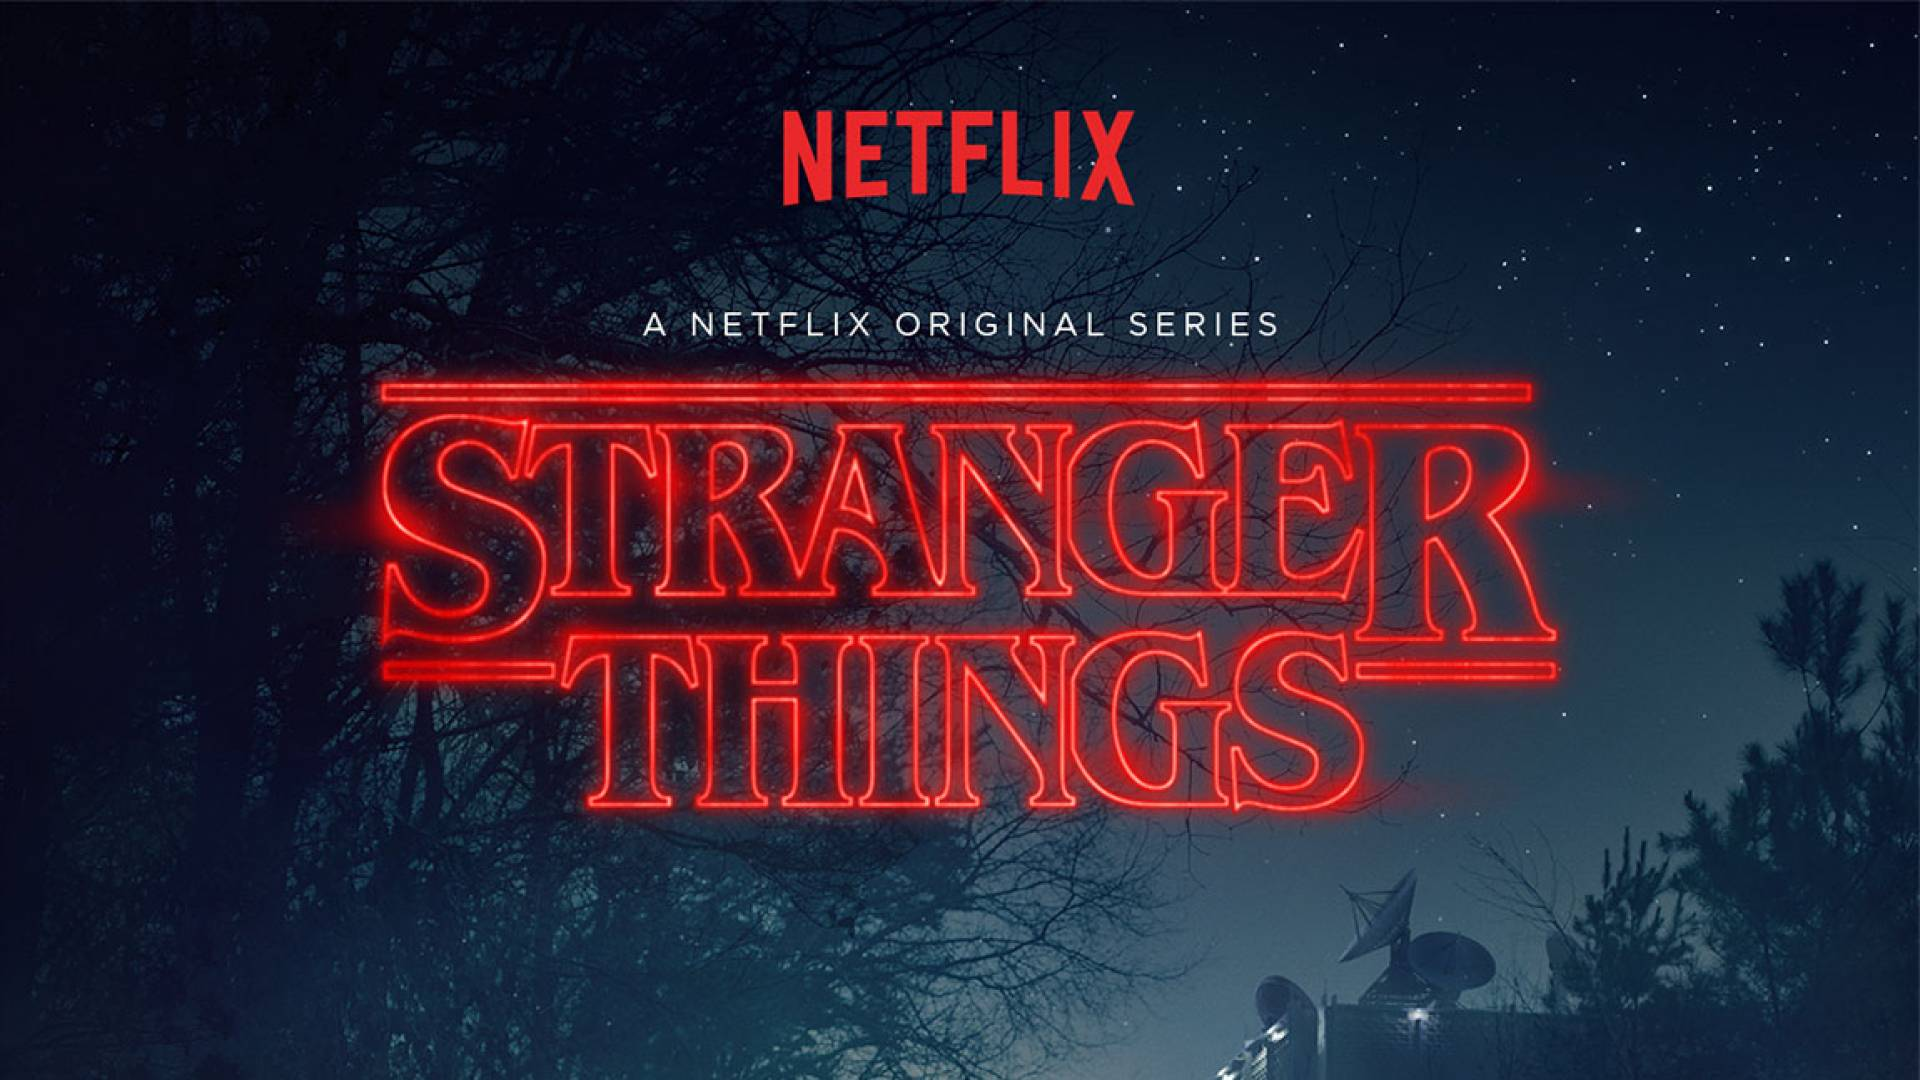 Sci-Fi Party Line #253 Stranger Things – Sci-Fi Party Line